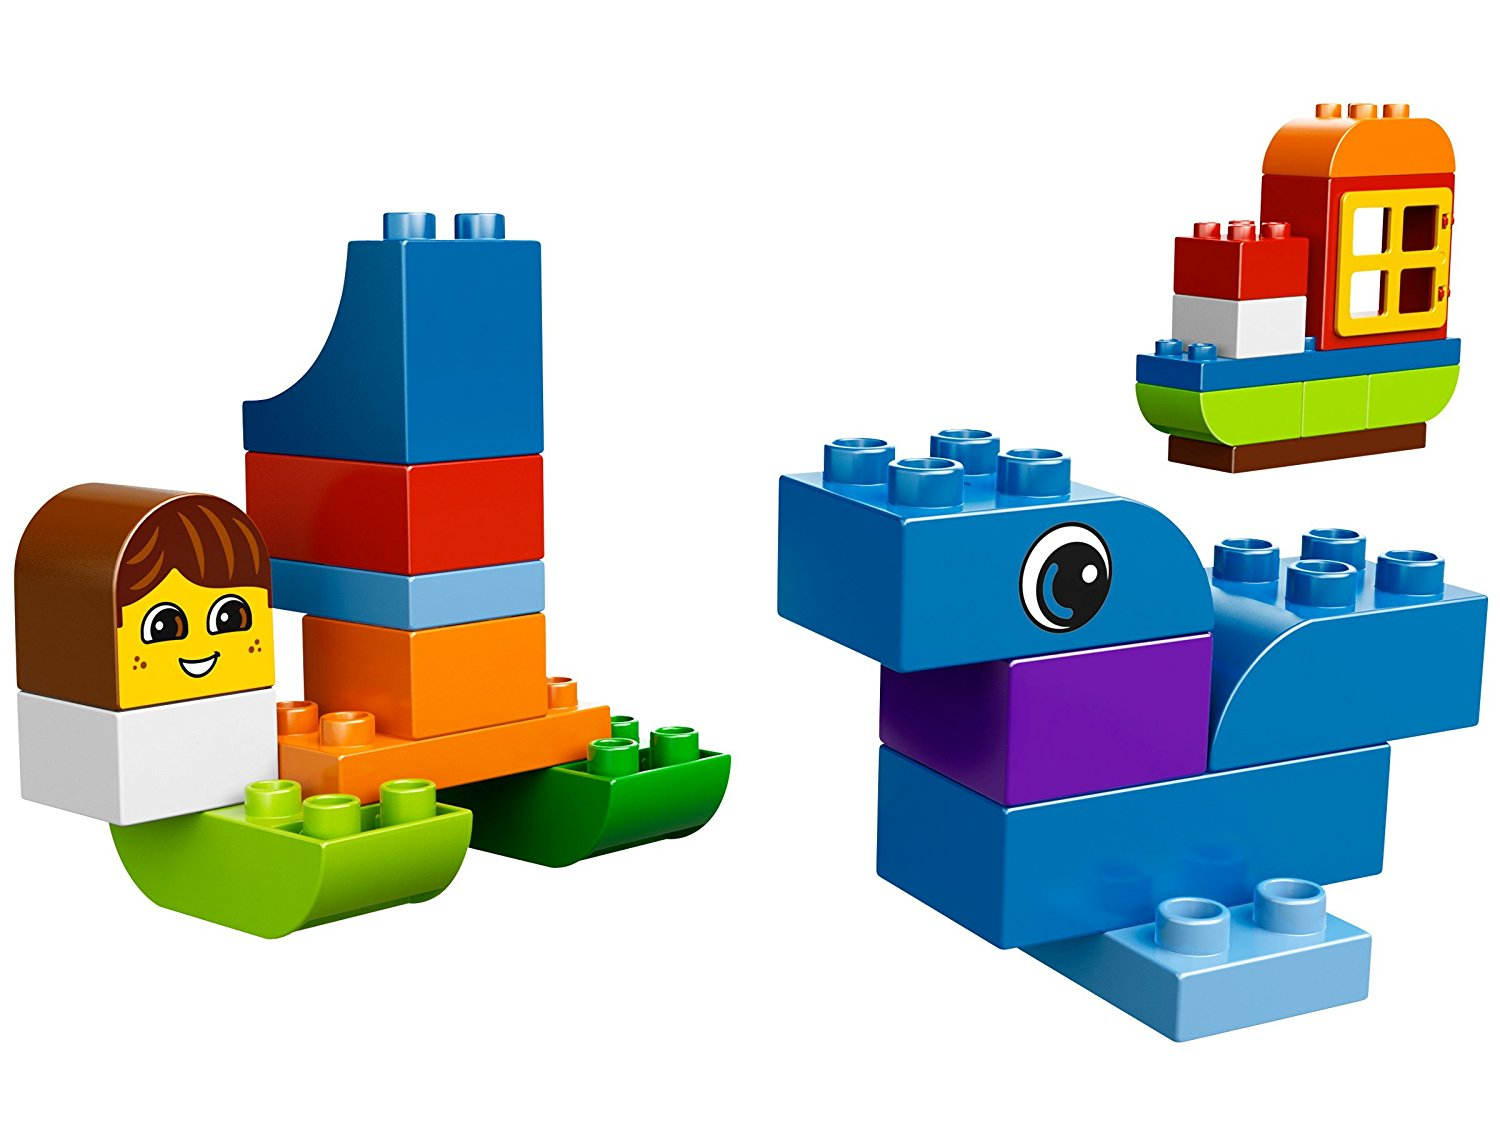 Images Of Legos | Free download best Images Of Legos on ClipArtMag com